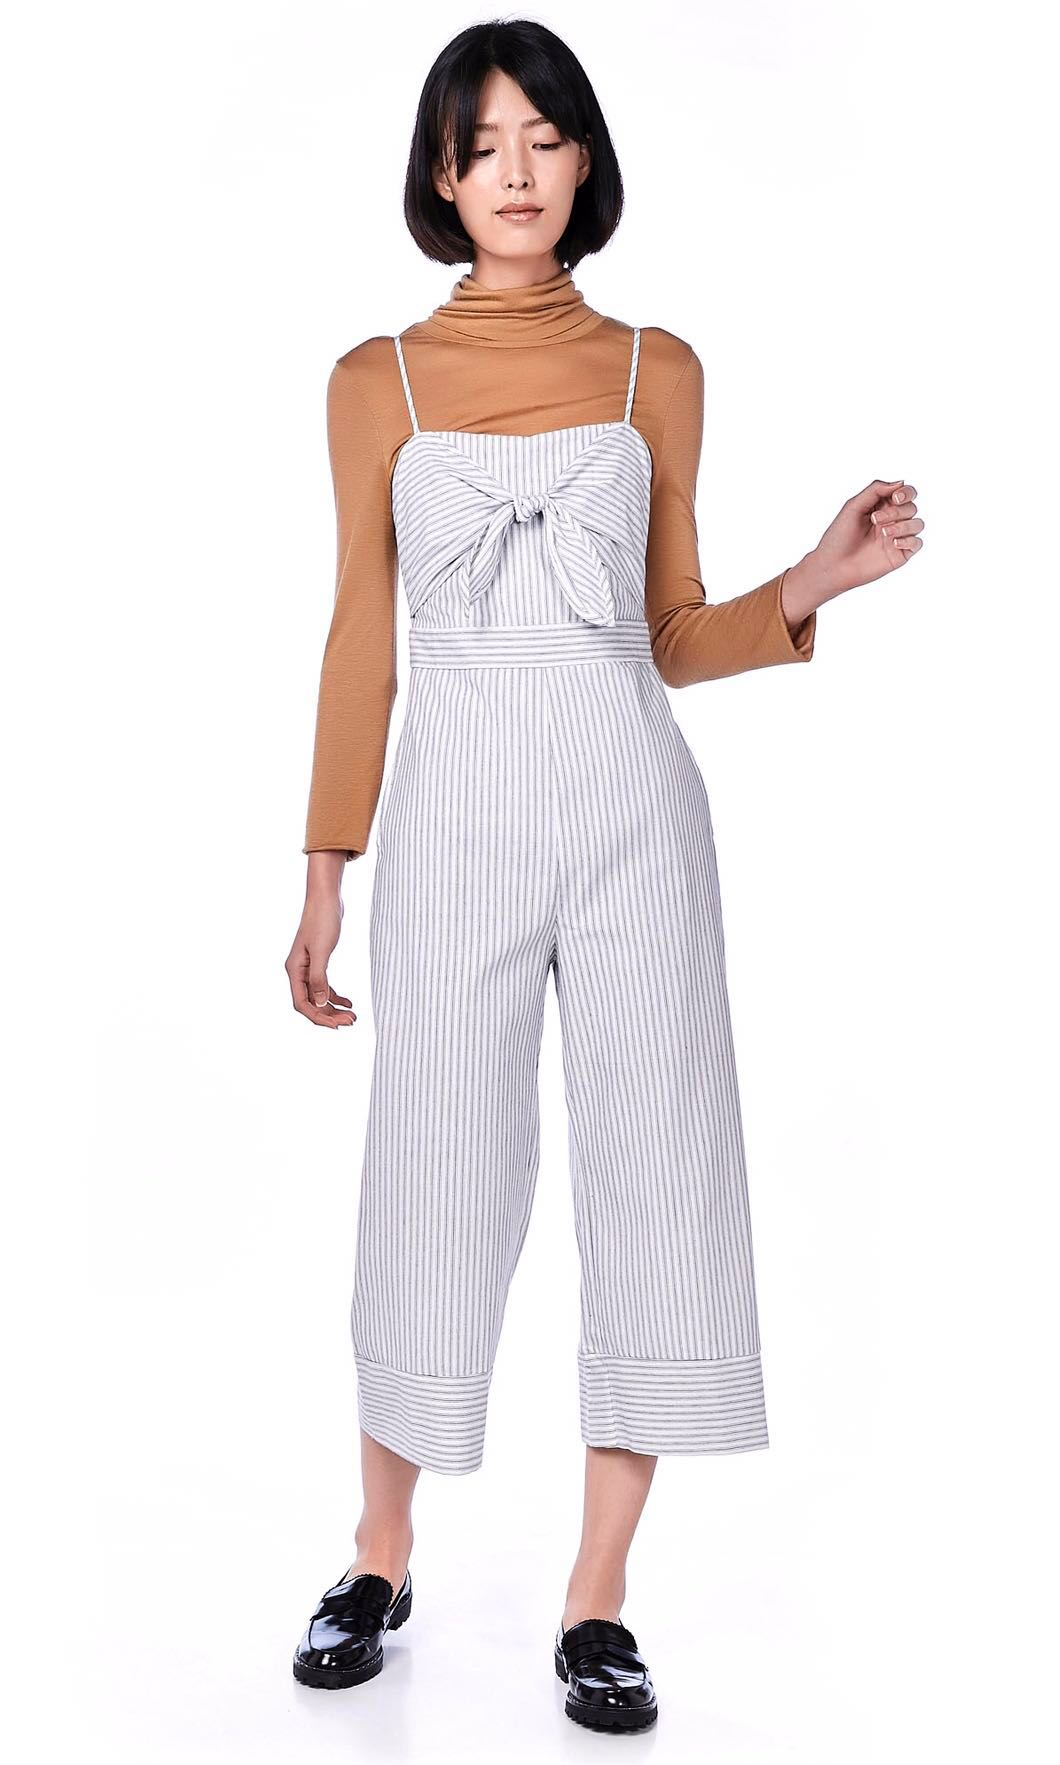 0b1a2876999a Yriana front-tie jumpsuit in black   white stripes size s